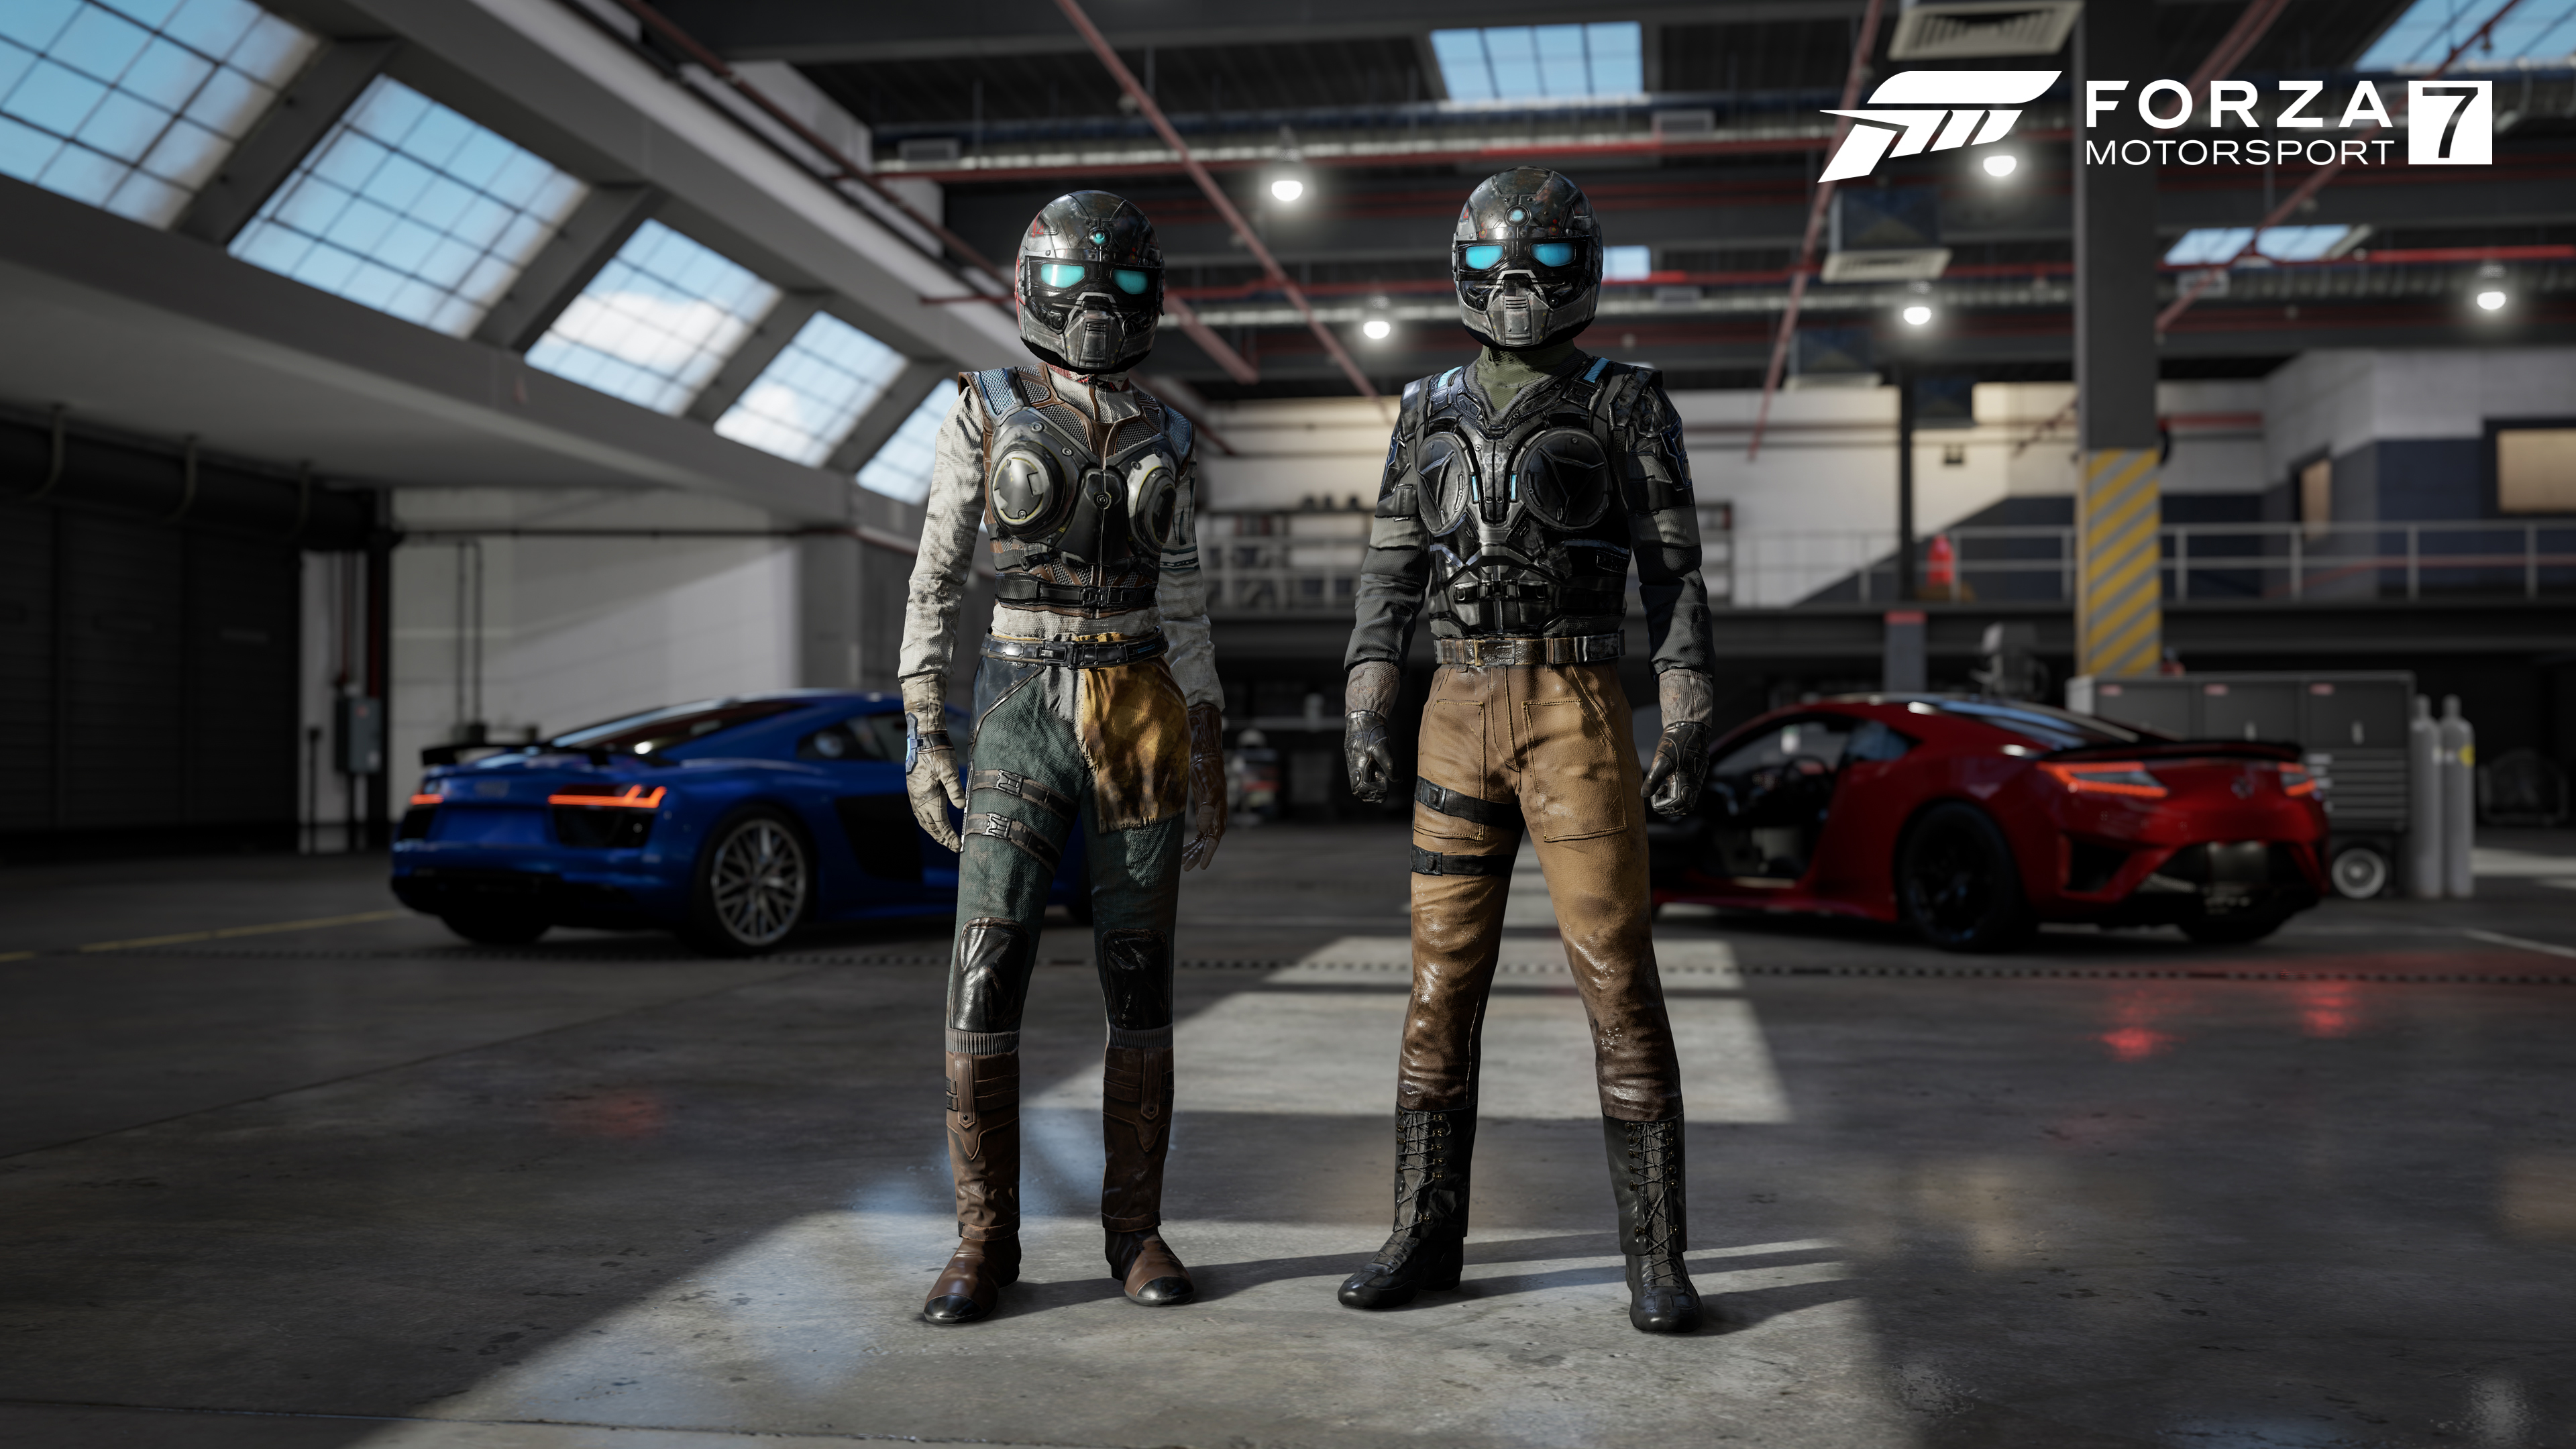 gears of war racing suits come to forza 7 community gears of war official site. Black Bedroom Furniture Sets. Home Design Ideas